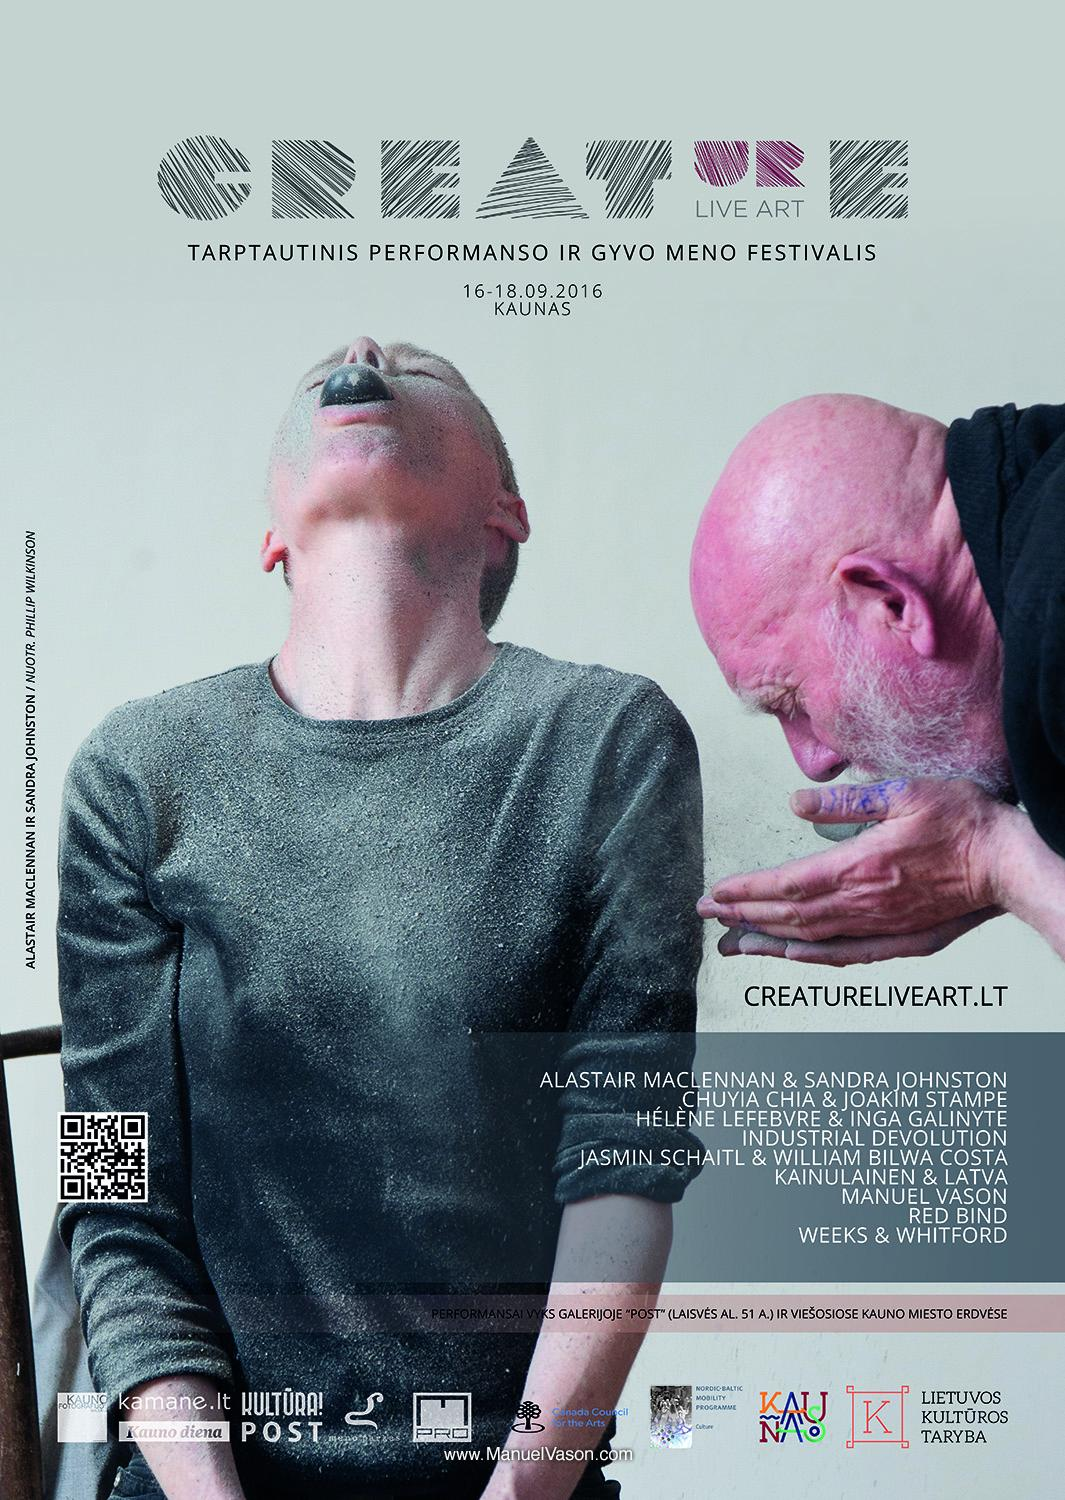 Participation at Creature Live Art Festival in Lithuania